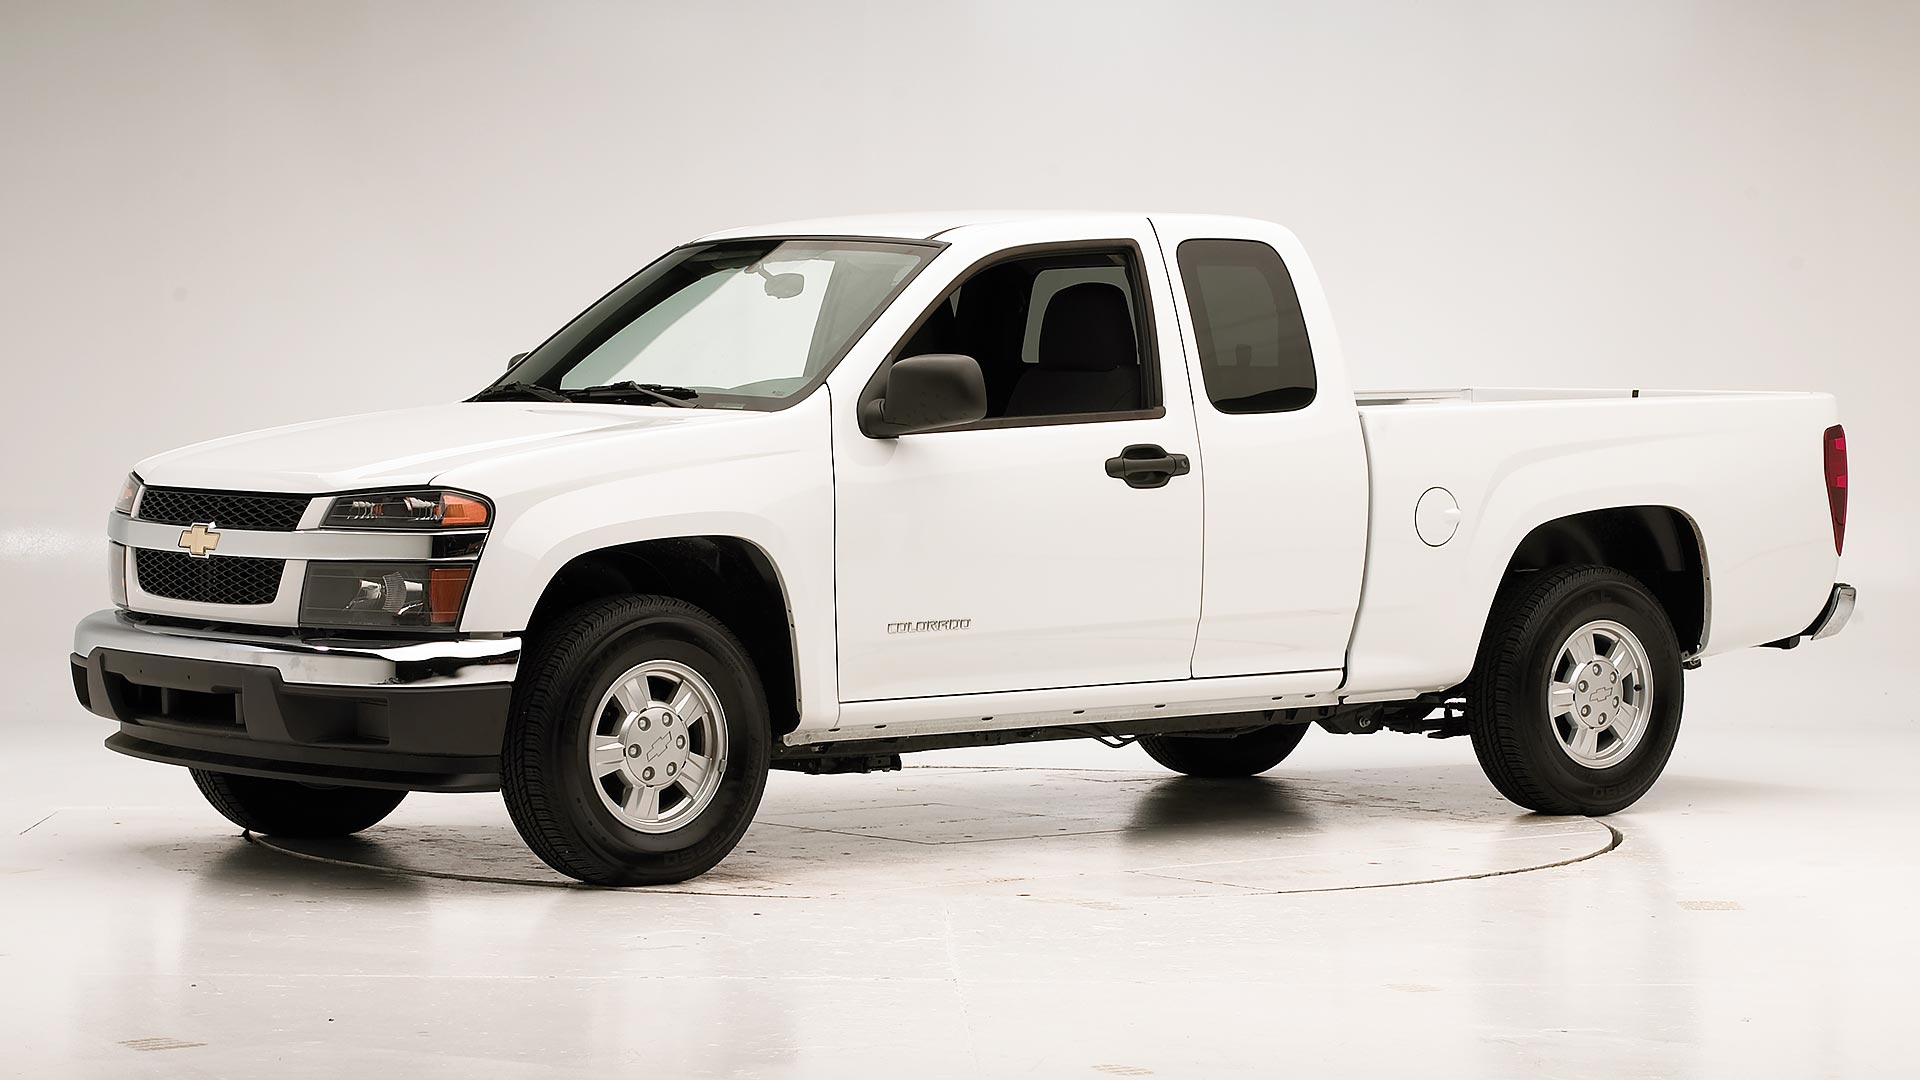 2009 Chevrolet Colorado Extended cab pickup